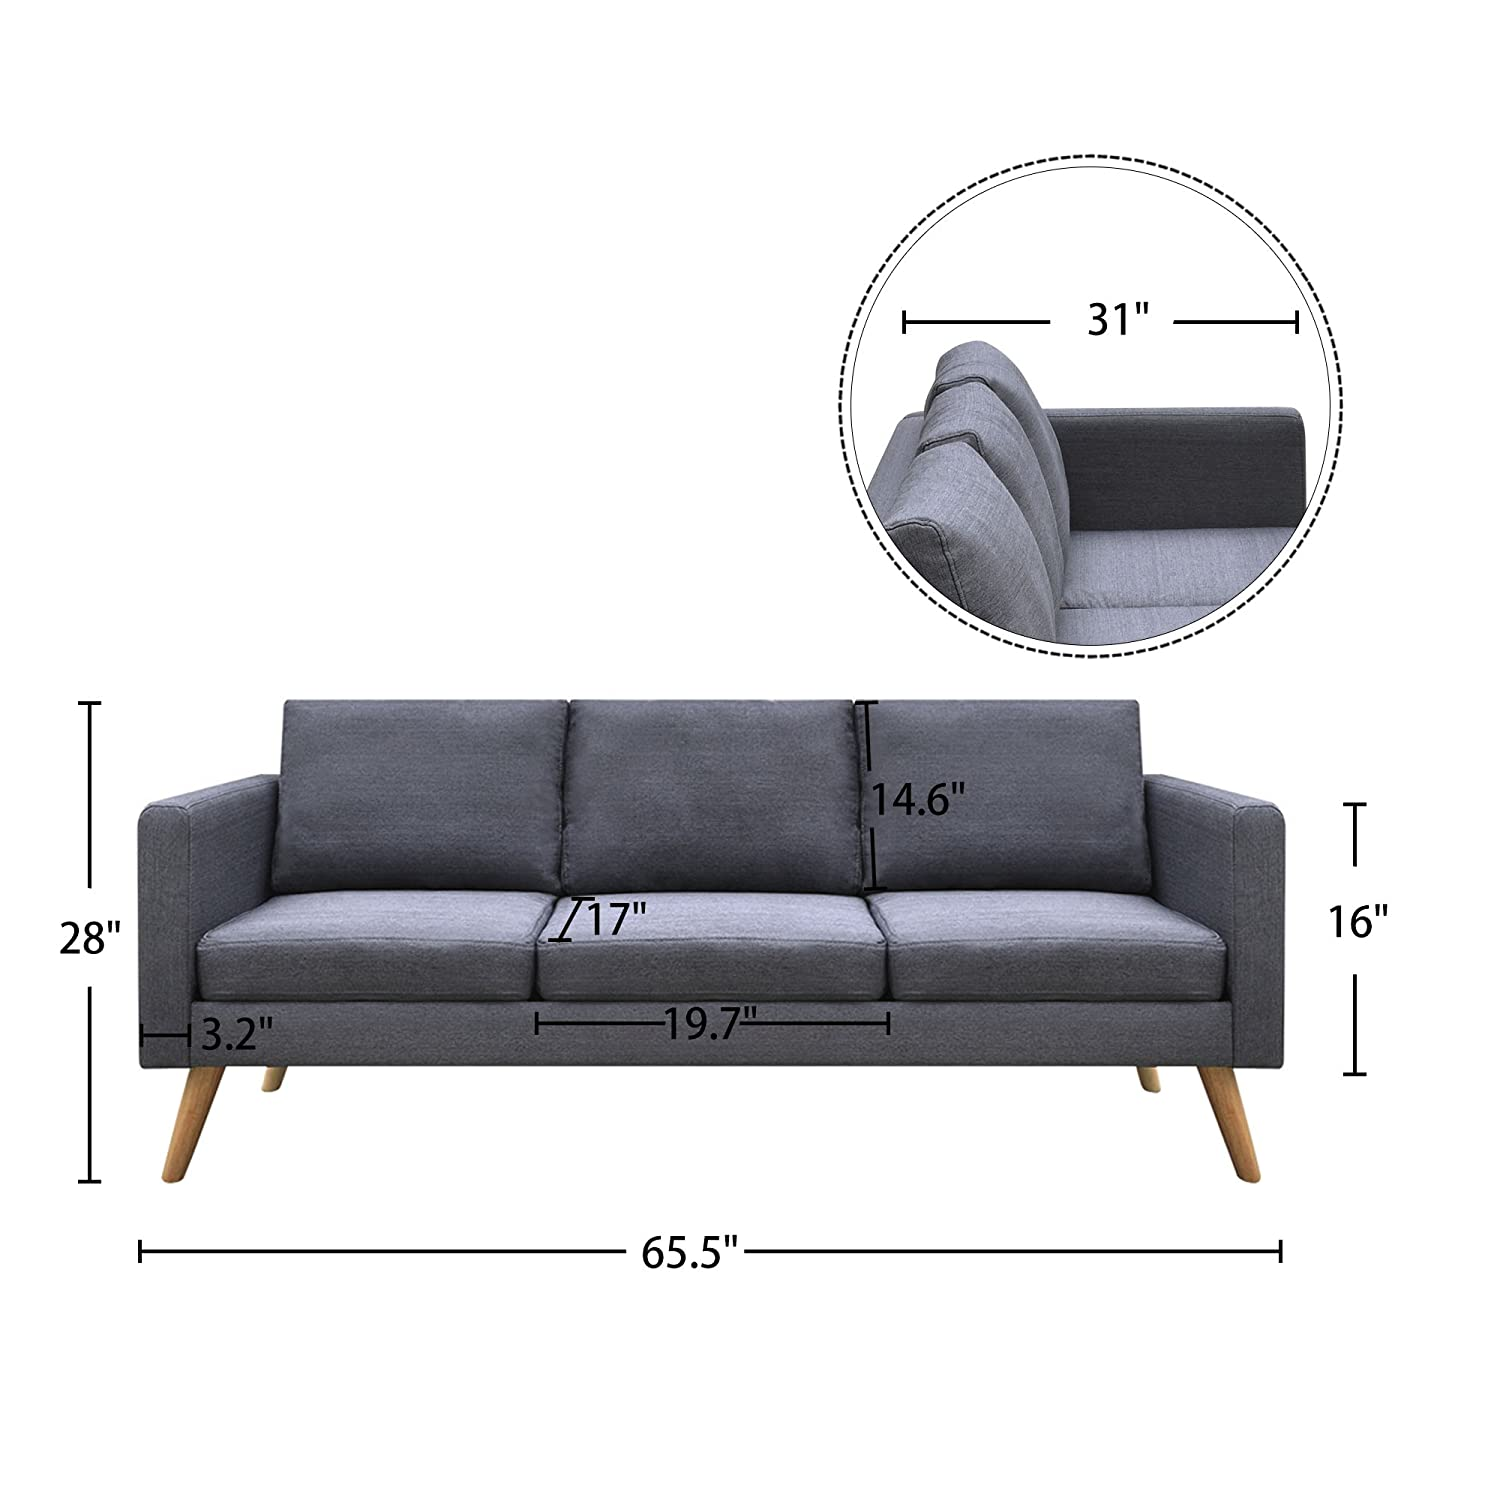 Cloud Mountain Gray Linen Fabric Sofa Living Room Furniture 3 Seat Couch with Cushion